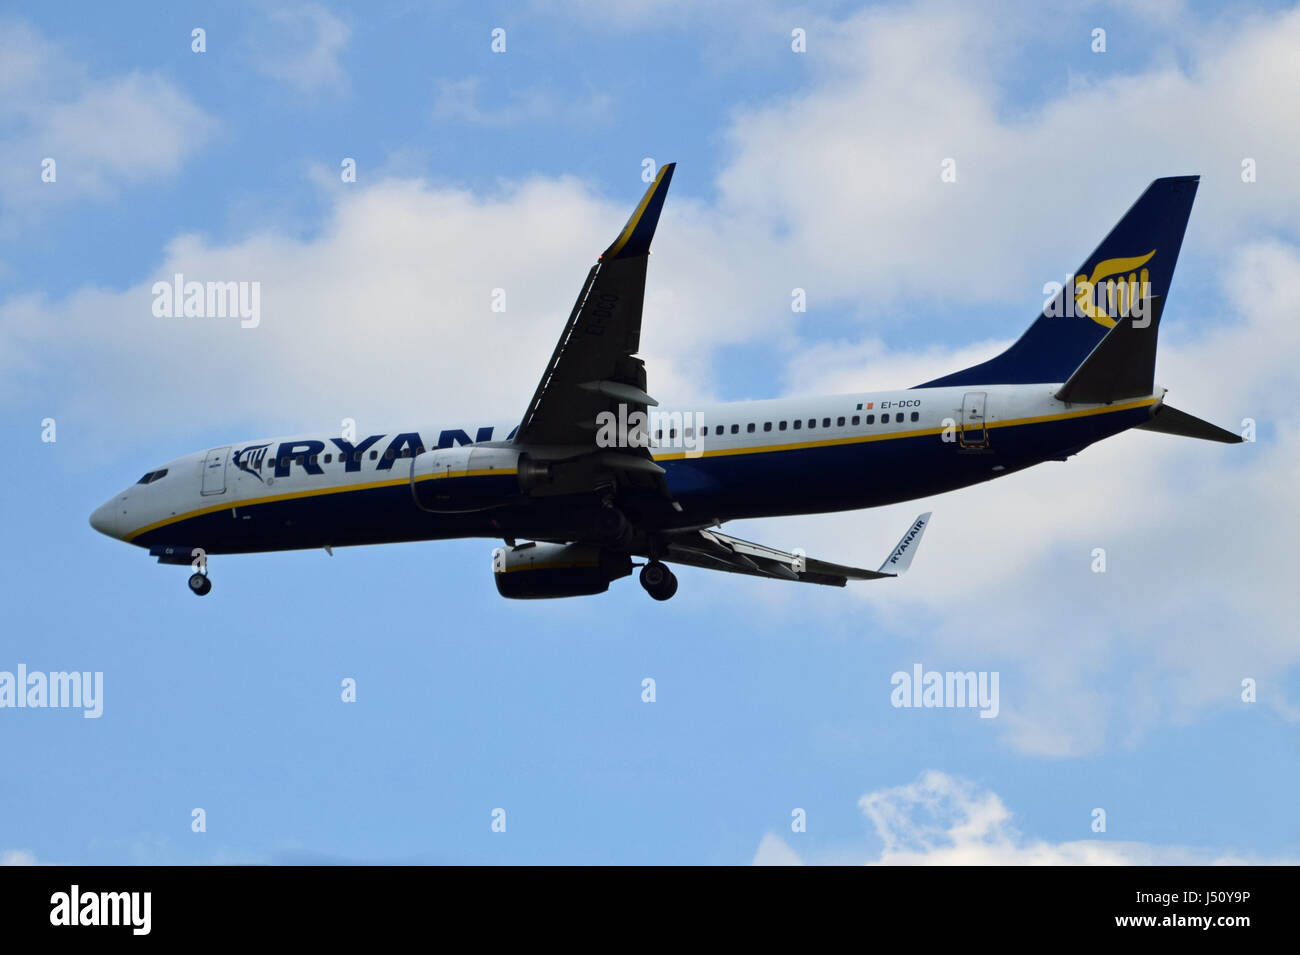 EI-DCO Ryanair Boeing 737-800 - cn 33809 / 1592 on final approach to LGW London Gatwick airport - Stock Image